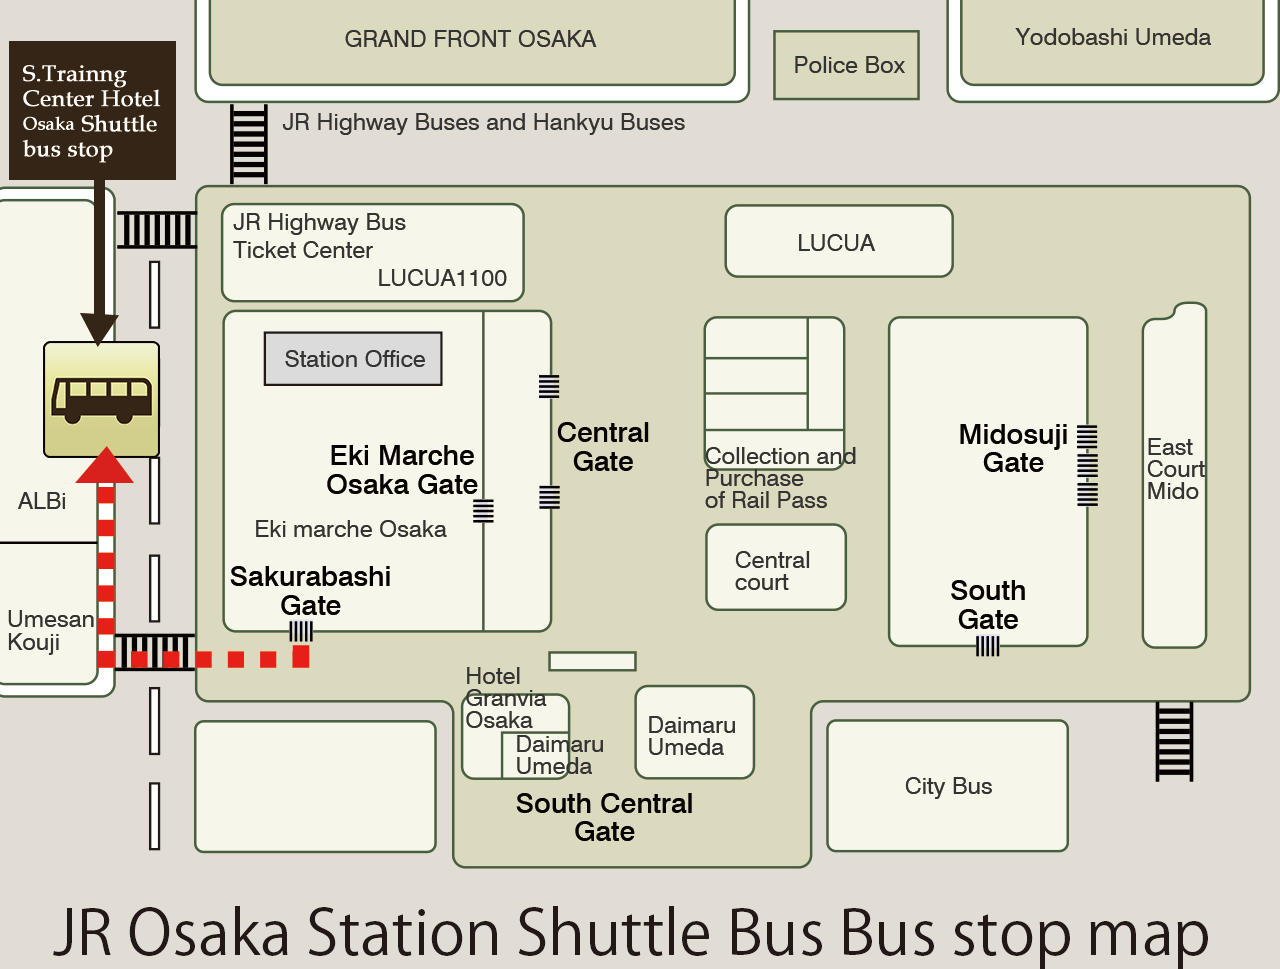 JR Osaka Station Shuttle Bus Stop Map